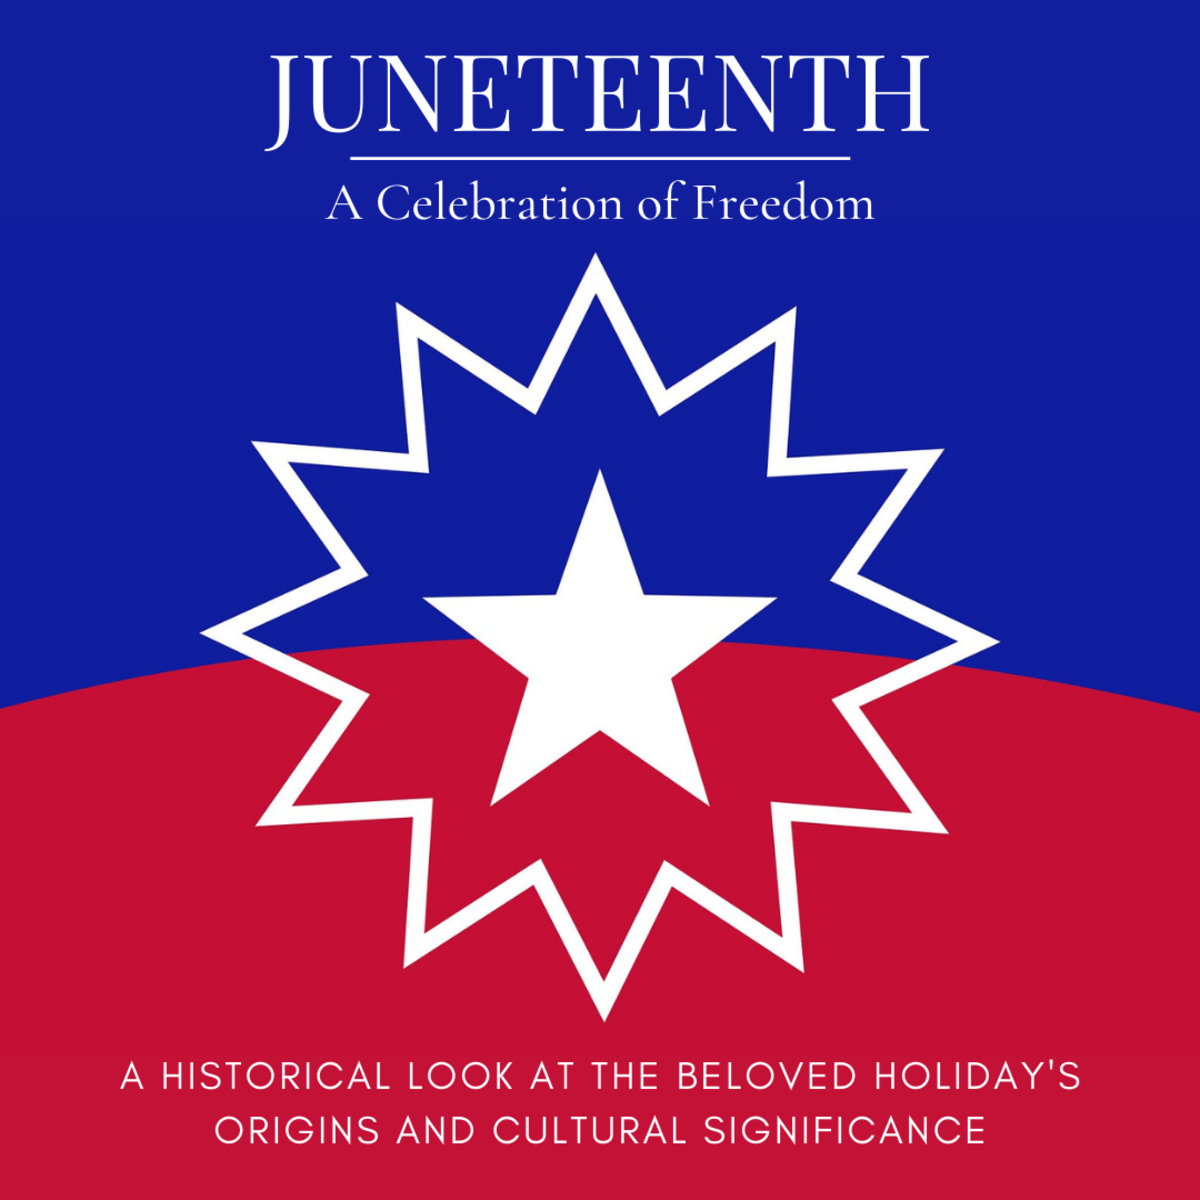 This article will take a look at the history of Juneteenth, including the events that led up to it—such as the Civil War and Emancipation Proclamation—as well as how it became an official holiday.